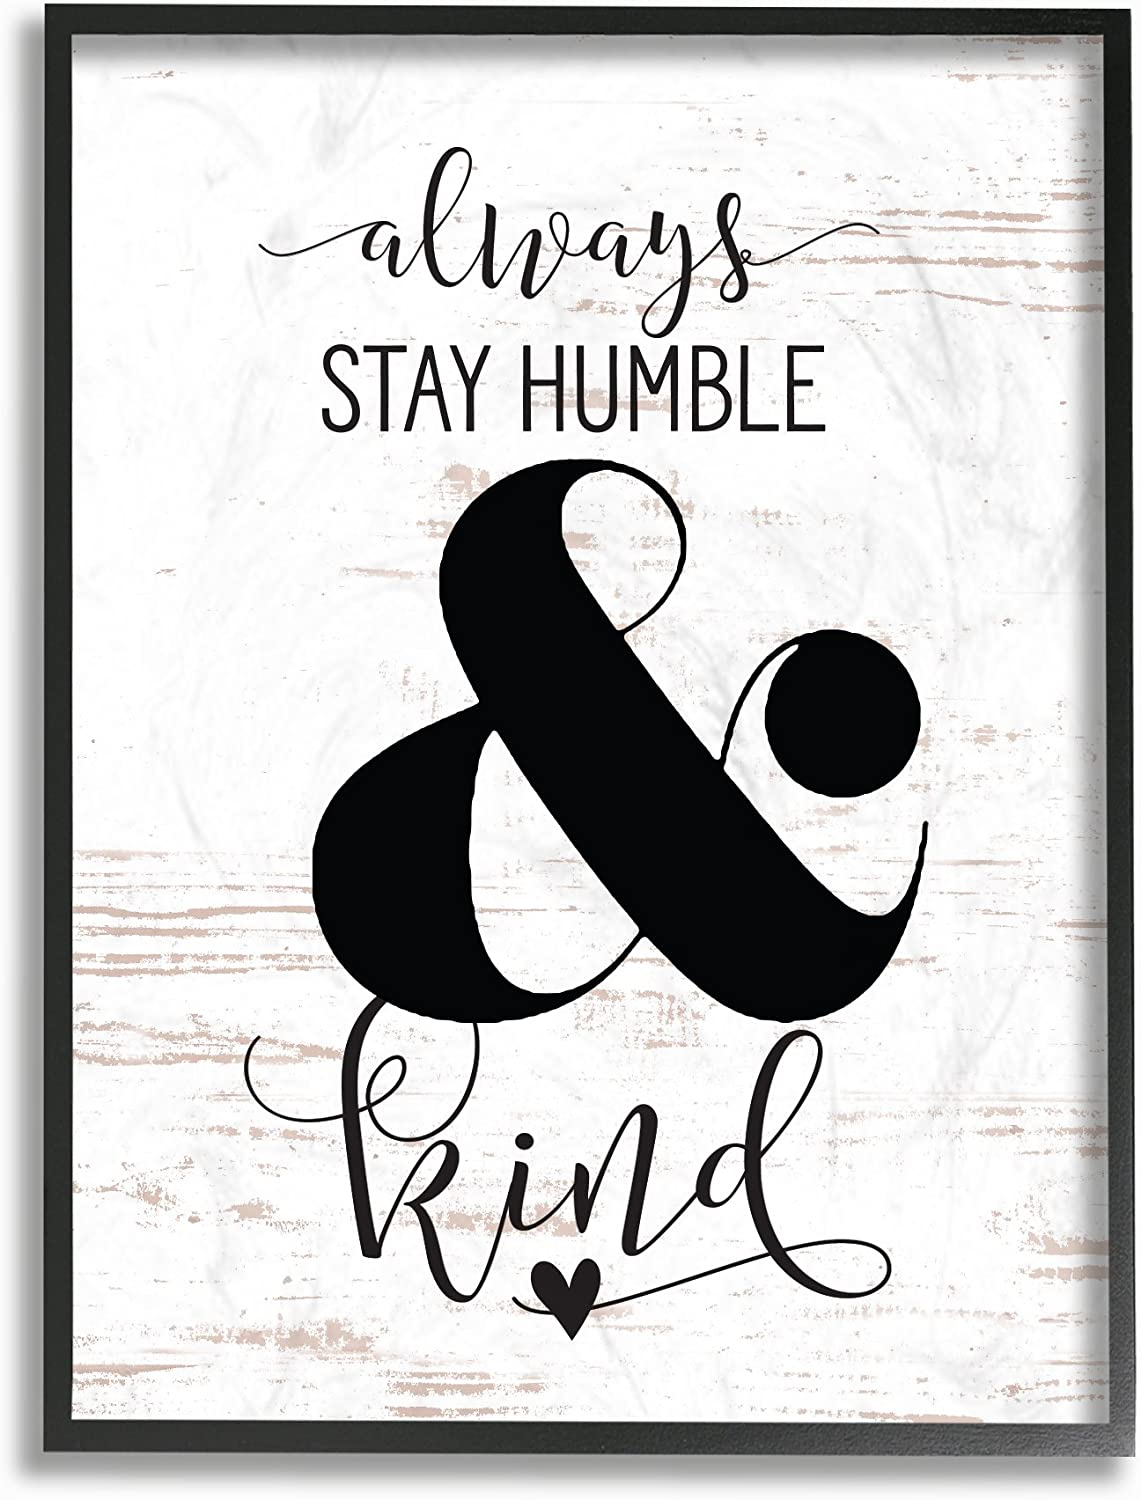 Stupell Industries rwp-126_fr_11x14 Home Decor Collection Always Stay Humble and Kind Framed Giclee Texturized Art, Multicolor